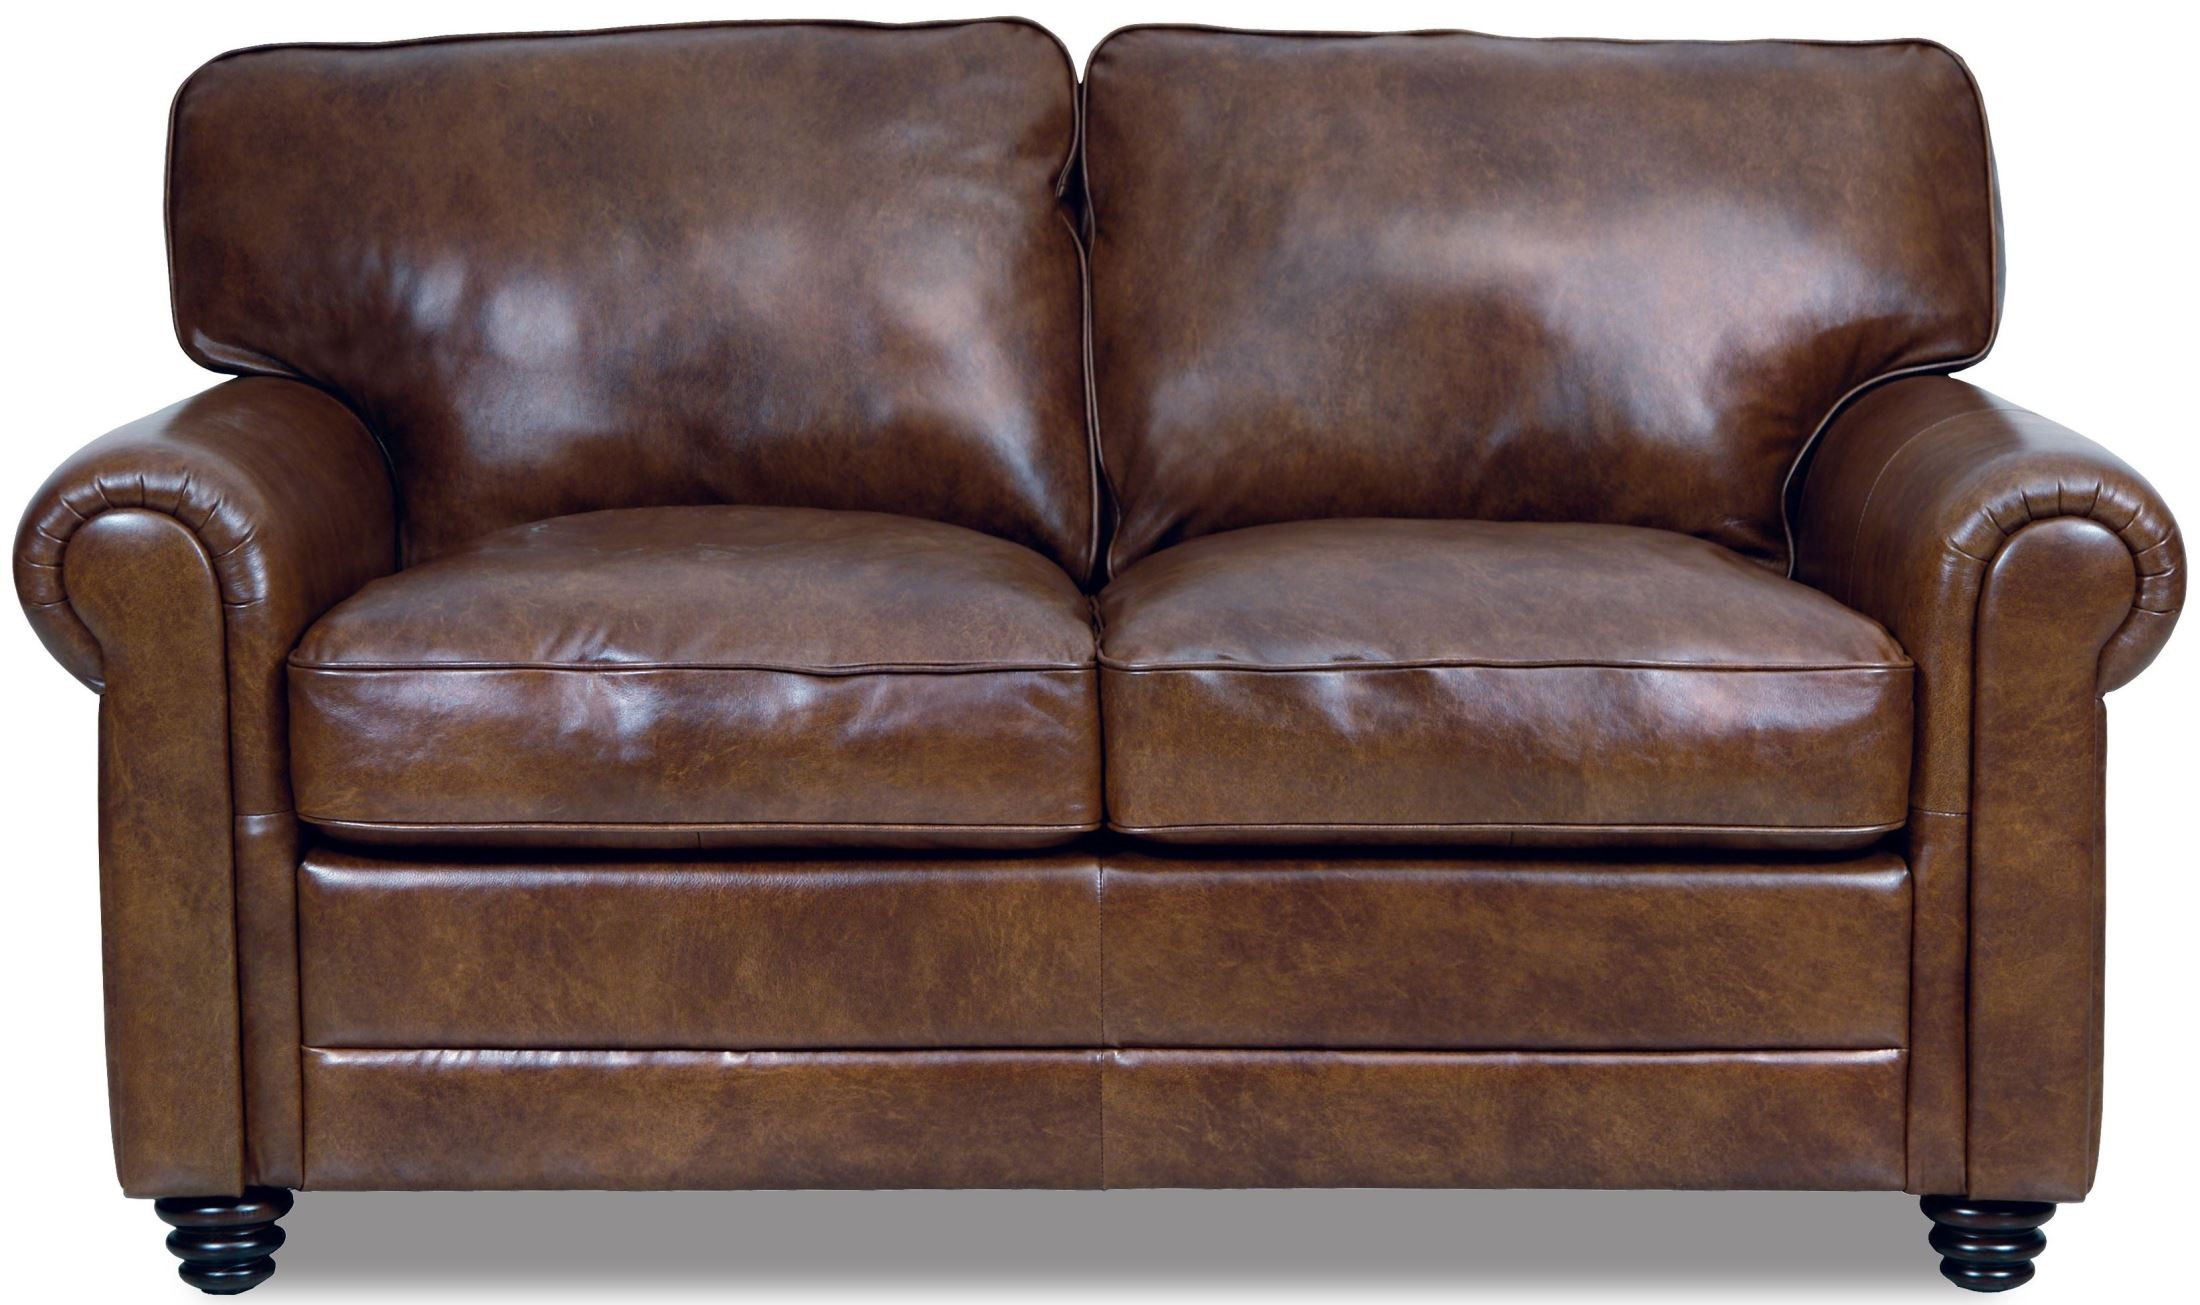 Andrew Leather Loveseat From Luke Leather | Coleman Furniture Inside Andrew Leather Sofa Chairs (Image 8 of 25)